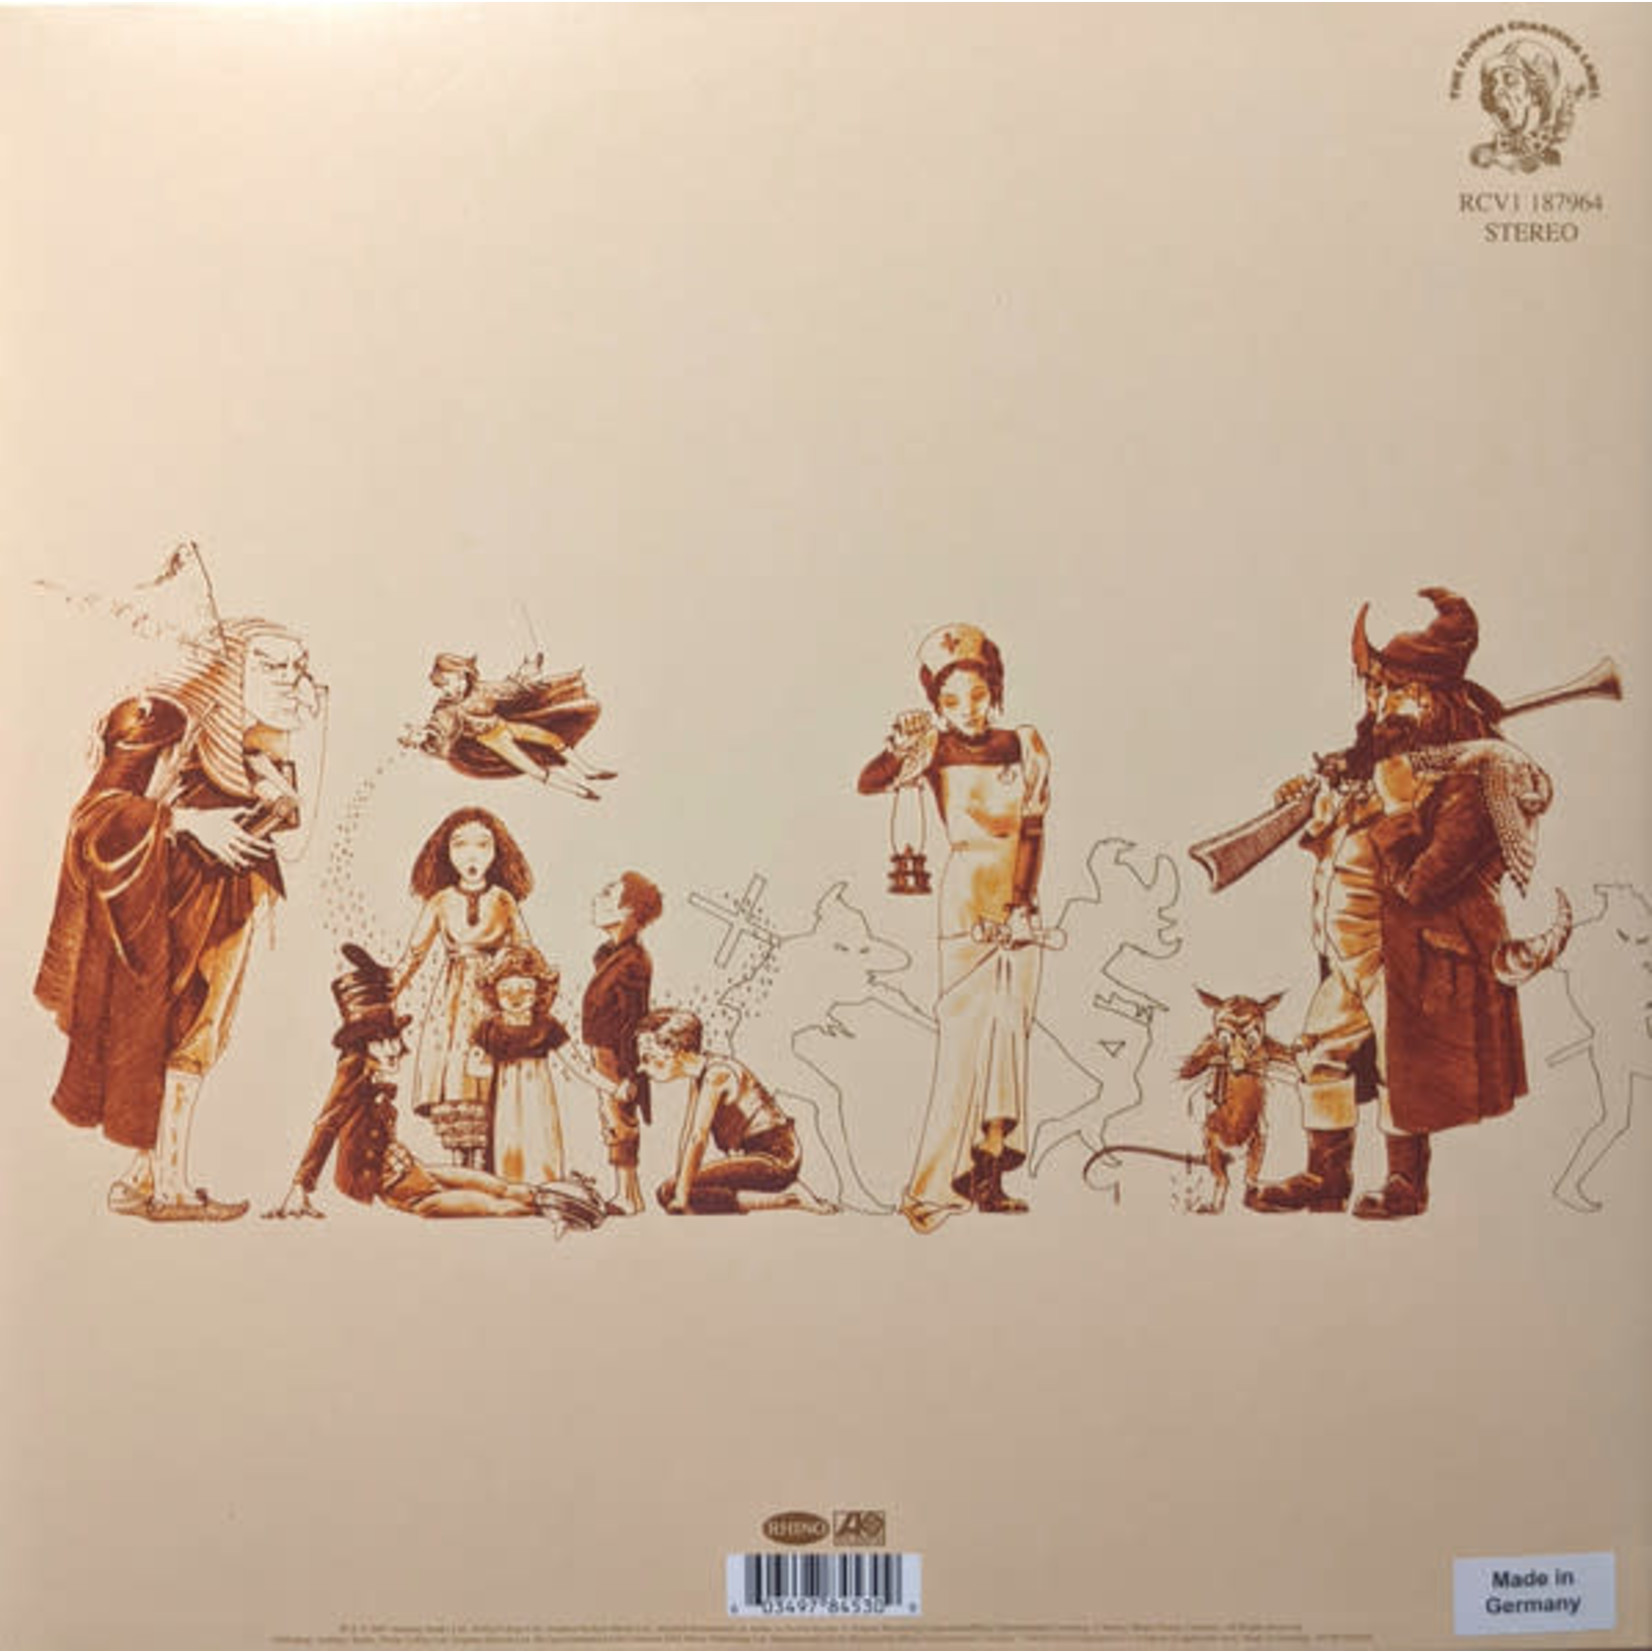 GENESIS A TRICK OF THE TAIL (EASTER YELLOW LP)